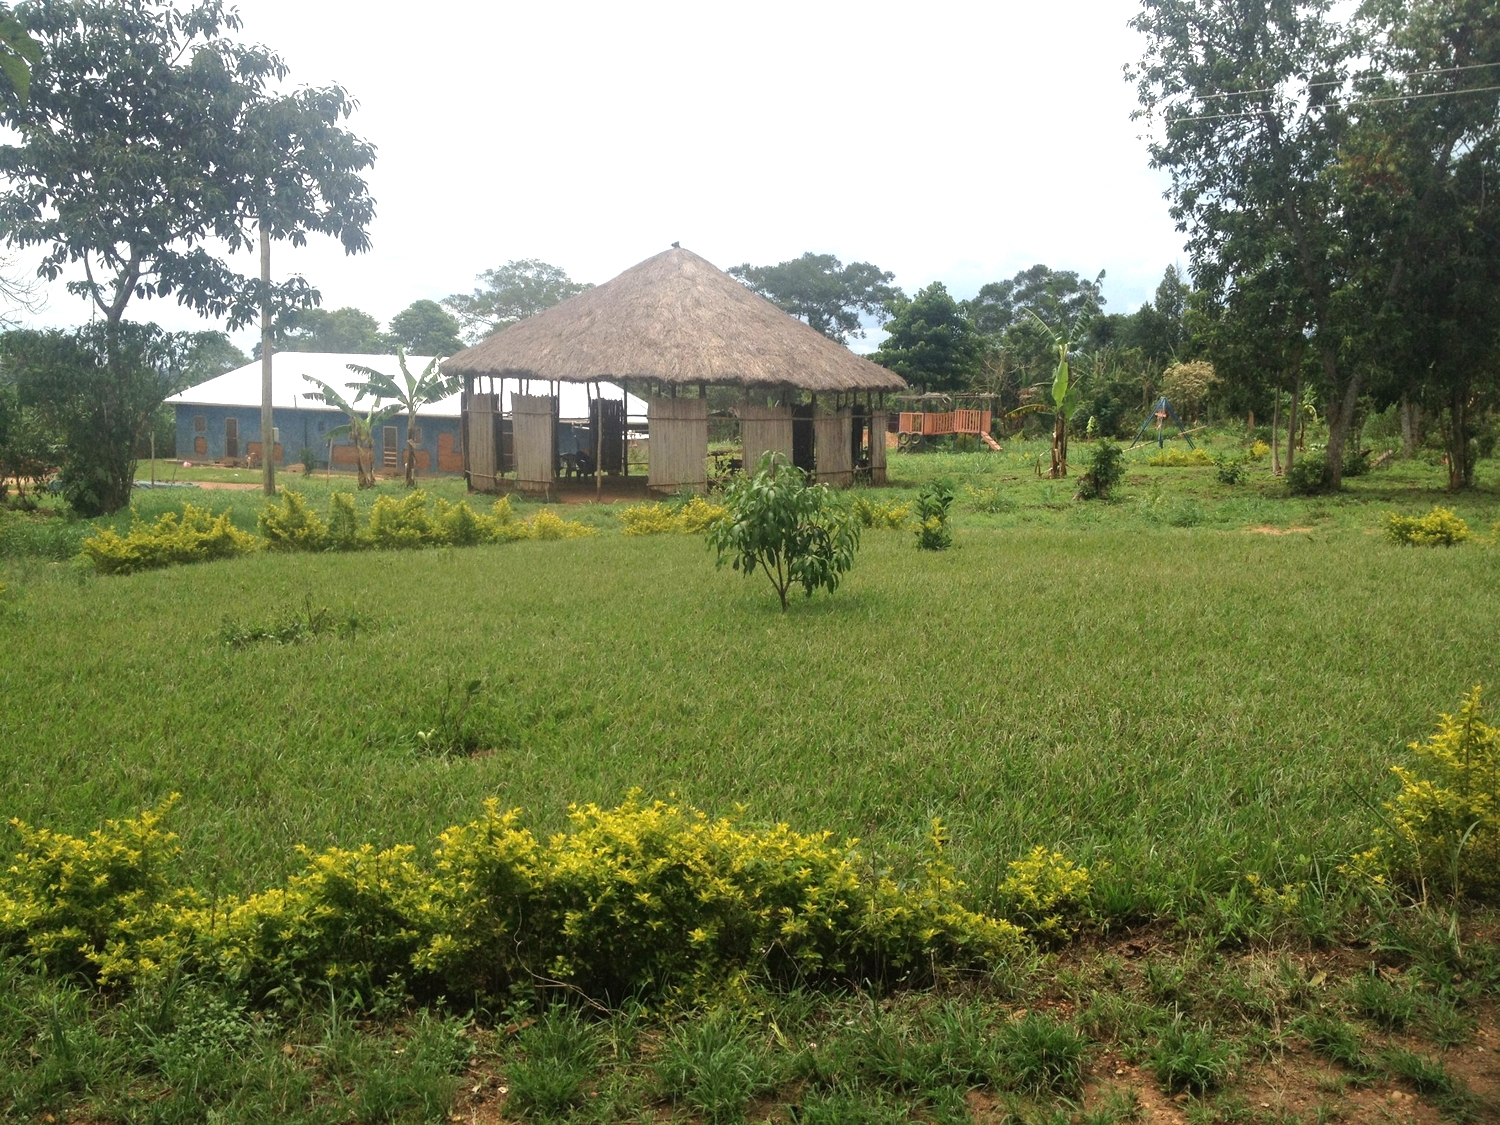 This is the G.O.D. property in Uganda, located outside of Kampala, on seven acres. The structure is where all large meetings, bible studies, and seminars occur.